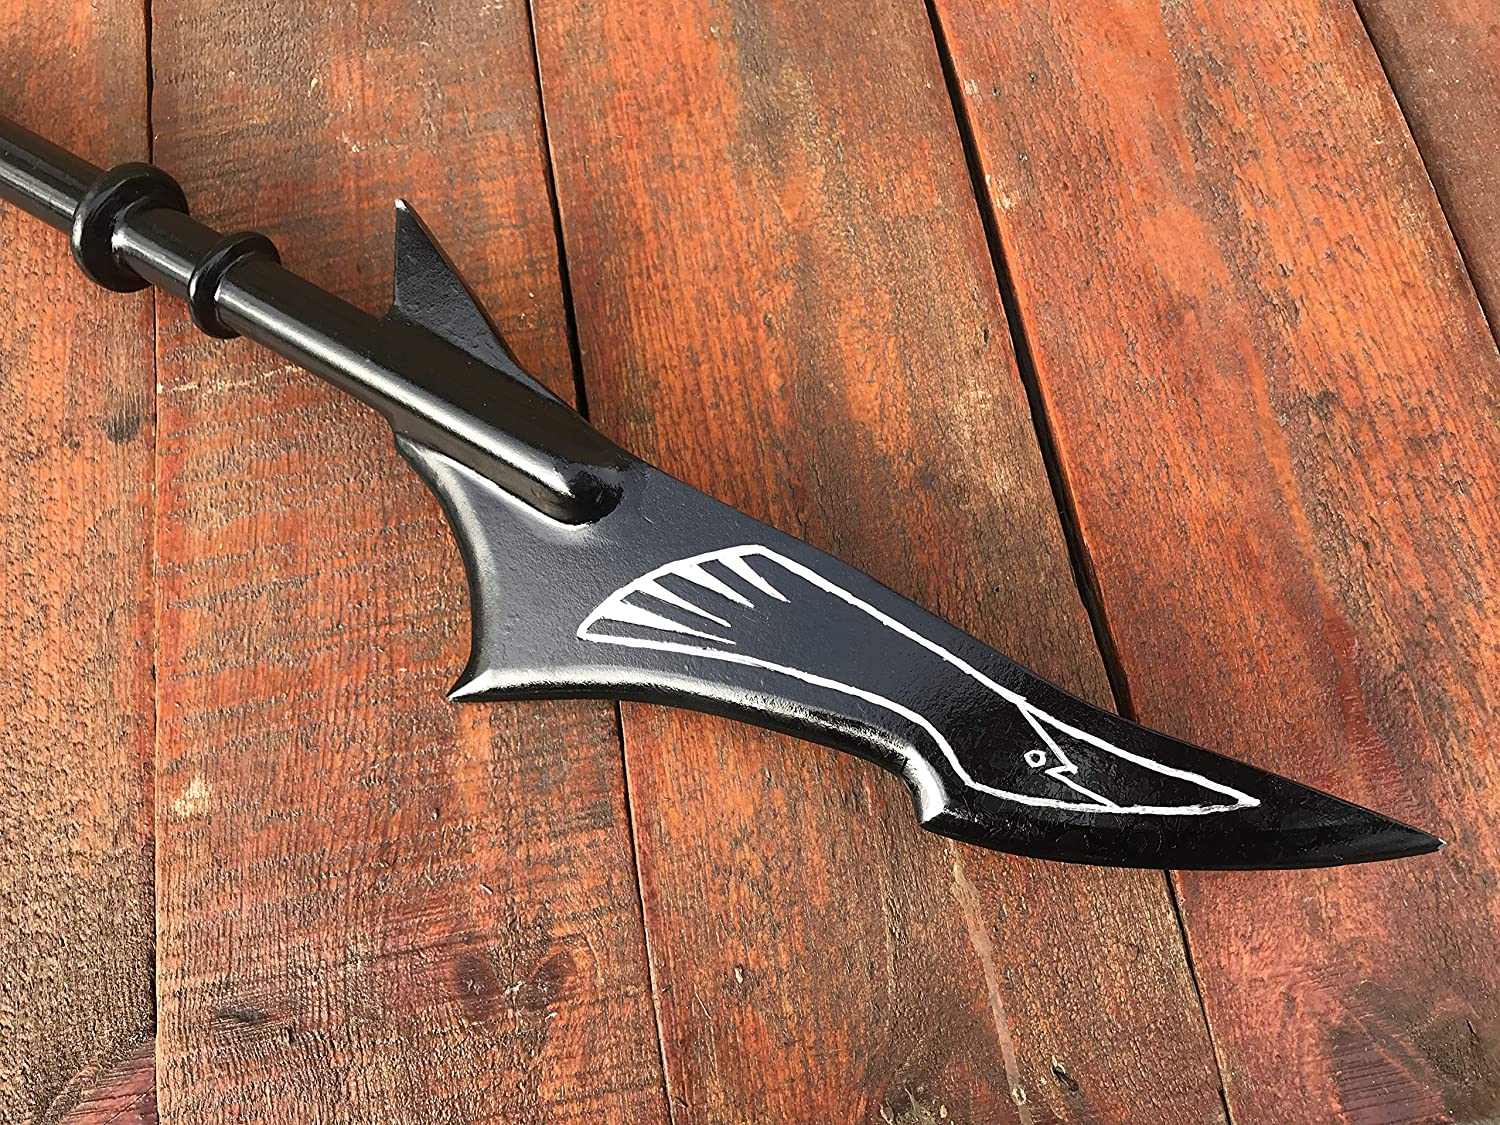 Mats stave Mat Cauthon cosplay weapon Wheel of Time spear